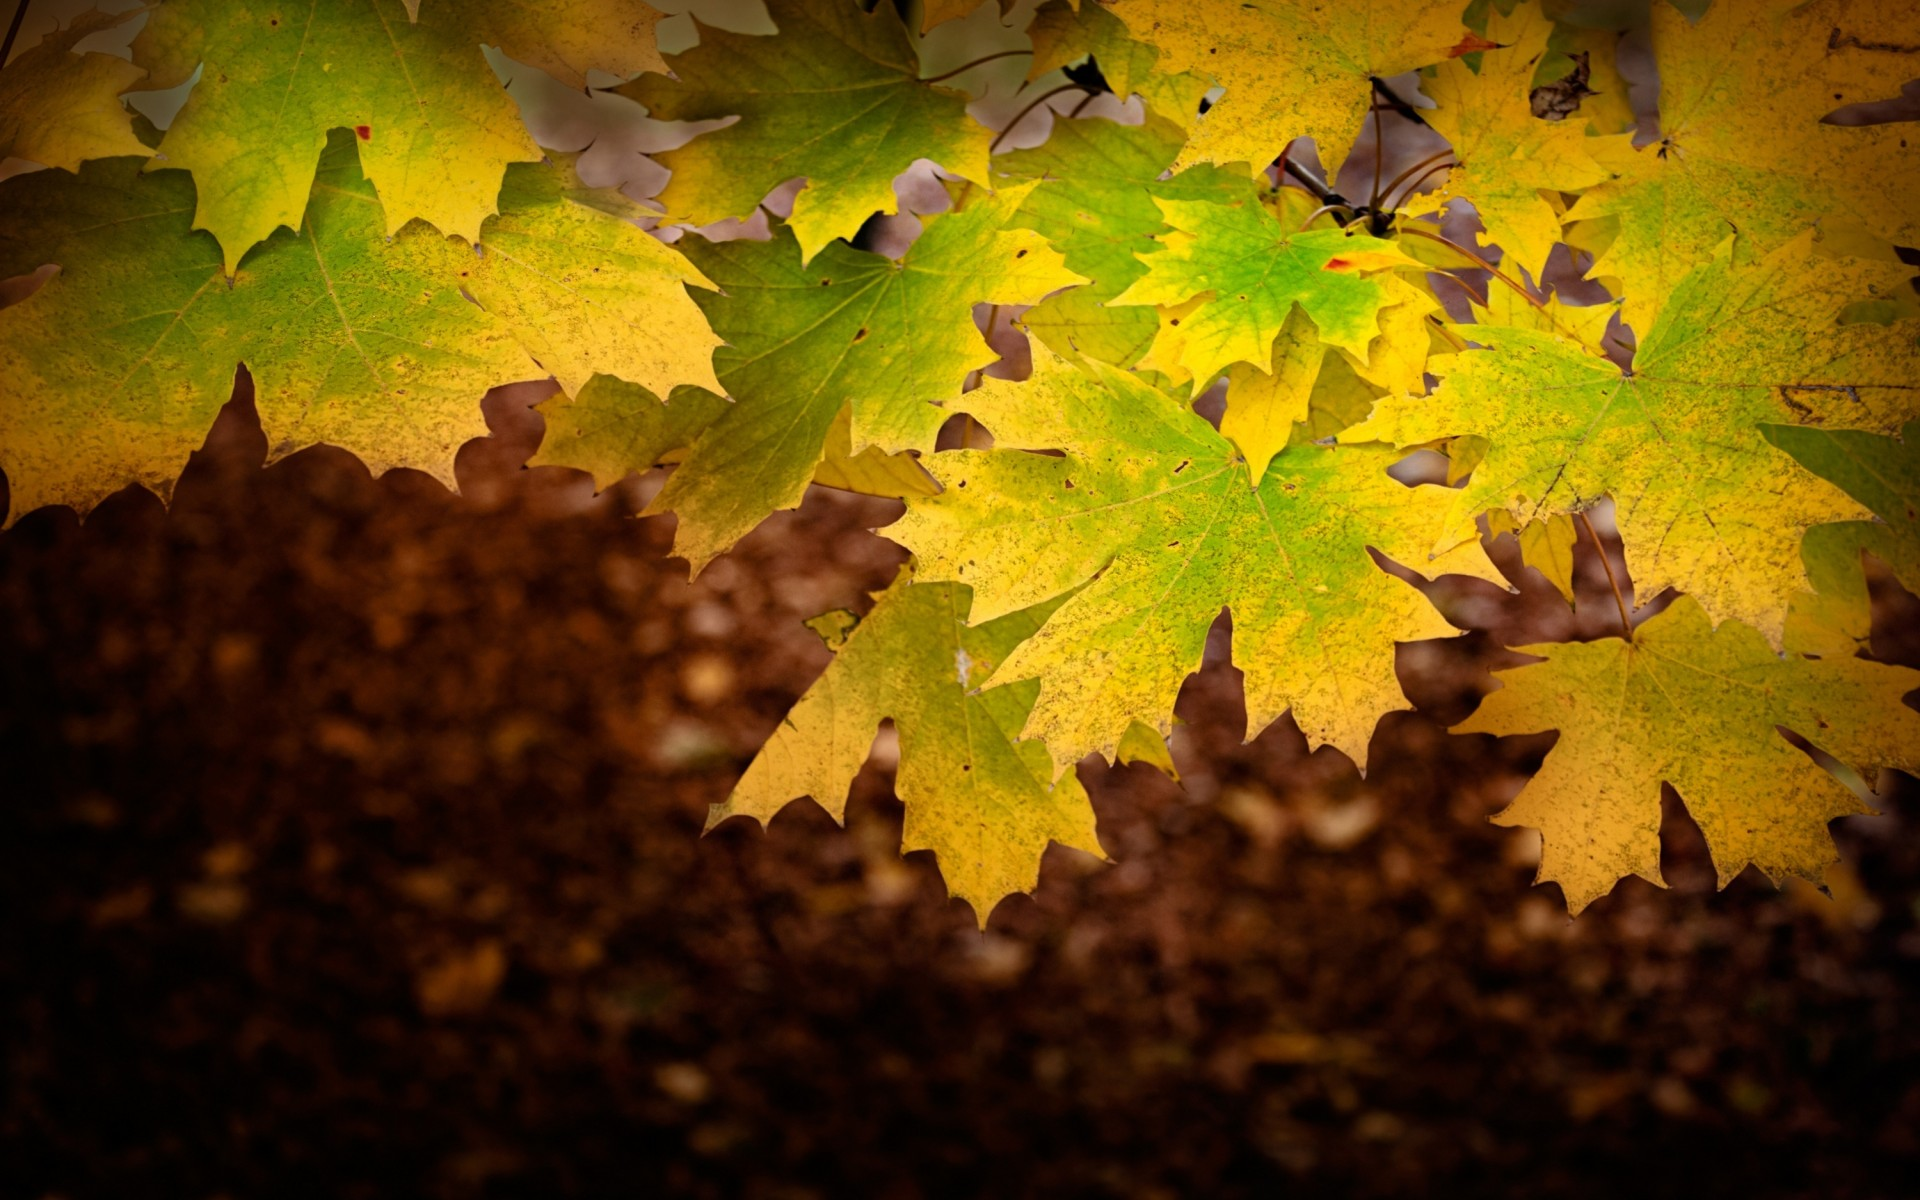 Desktop Wallpaper 201 – Autunno 2014